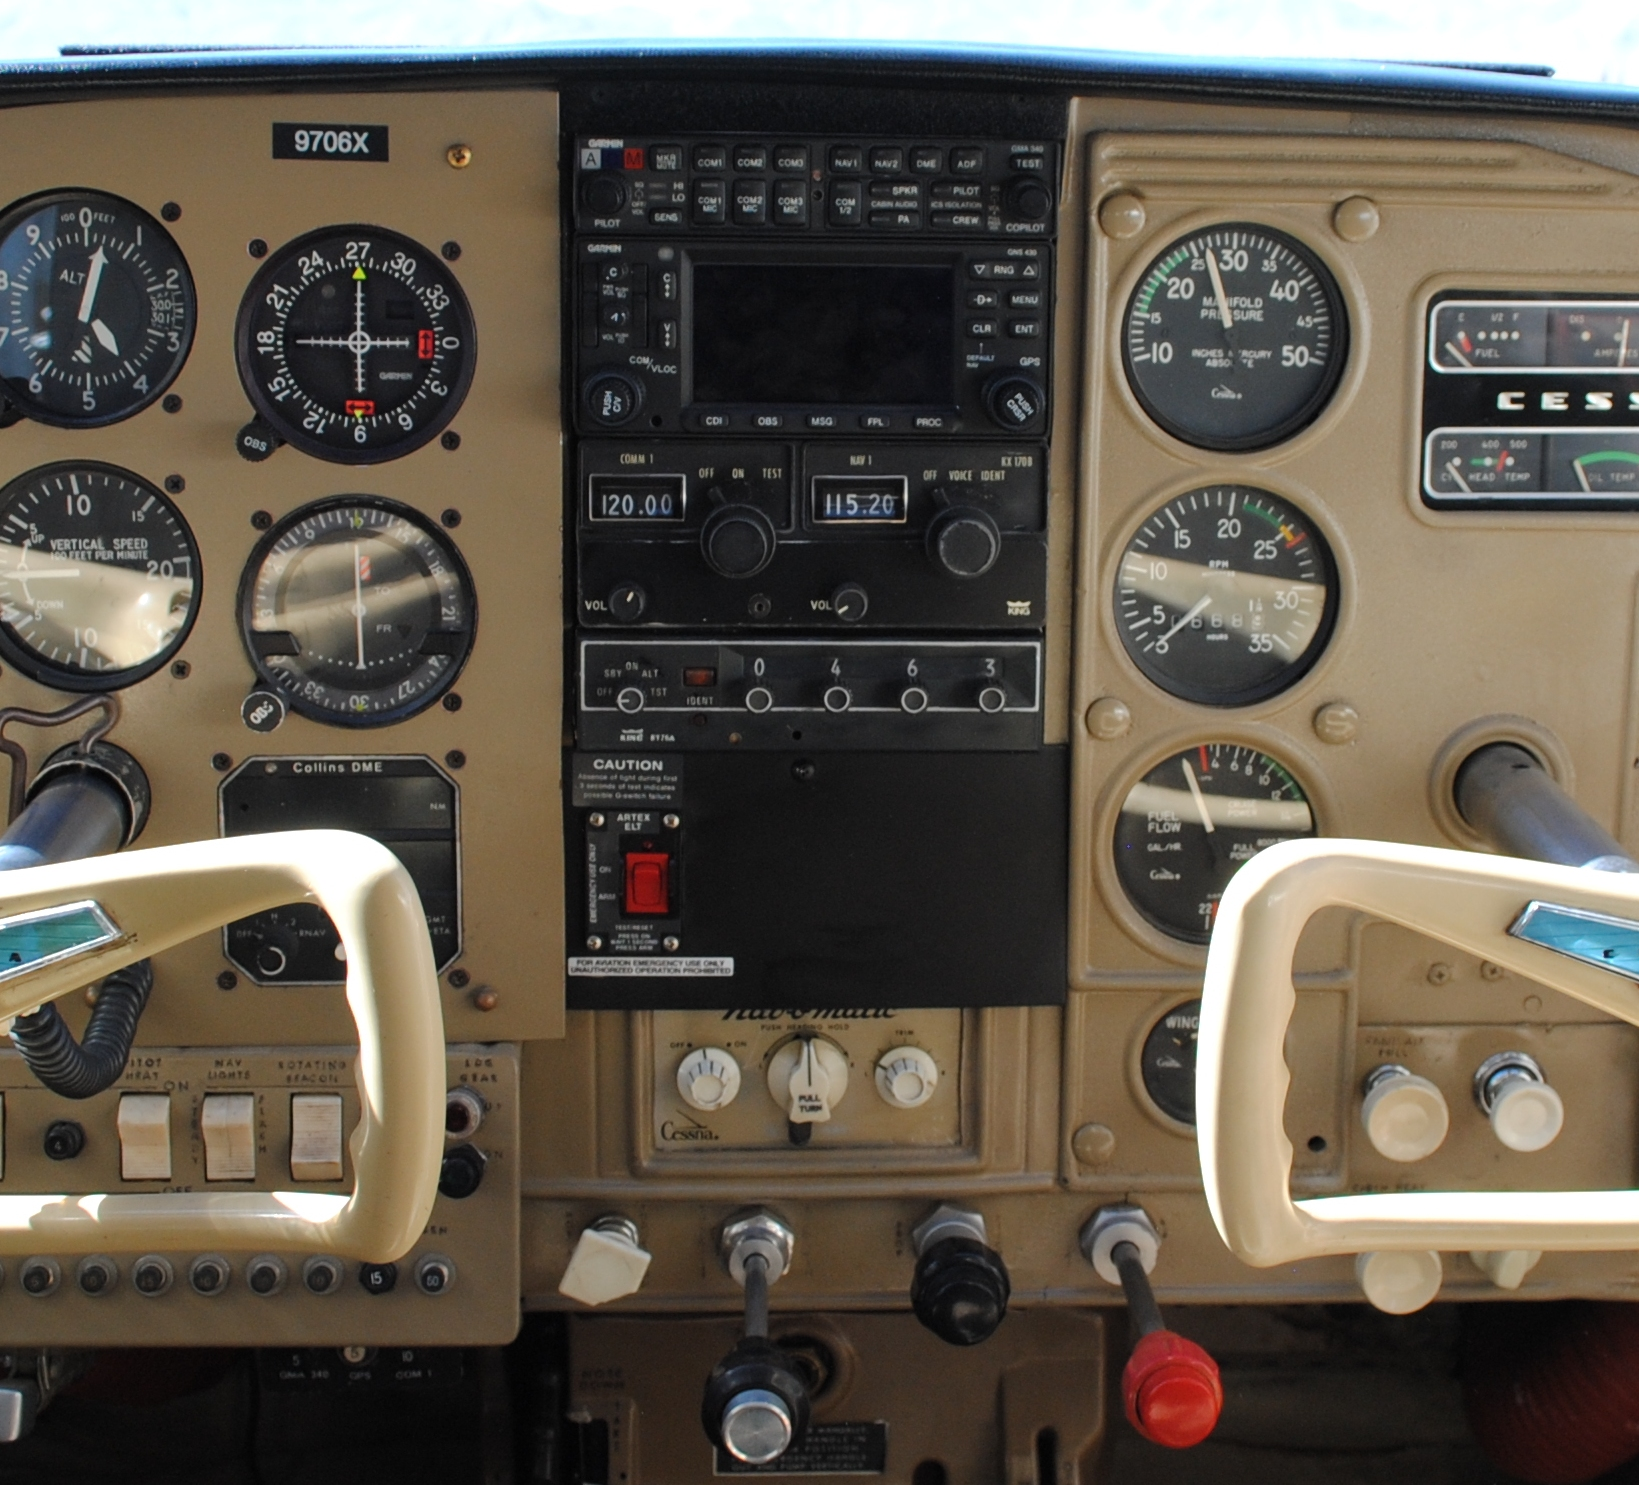 Windshield Repair Near Me >> 1962 Cessna 210 Robertson STOL | El Paso Aero, Inc ...